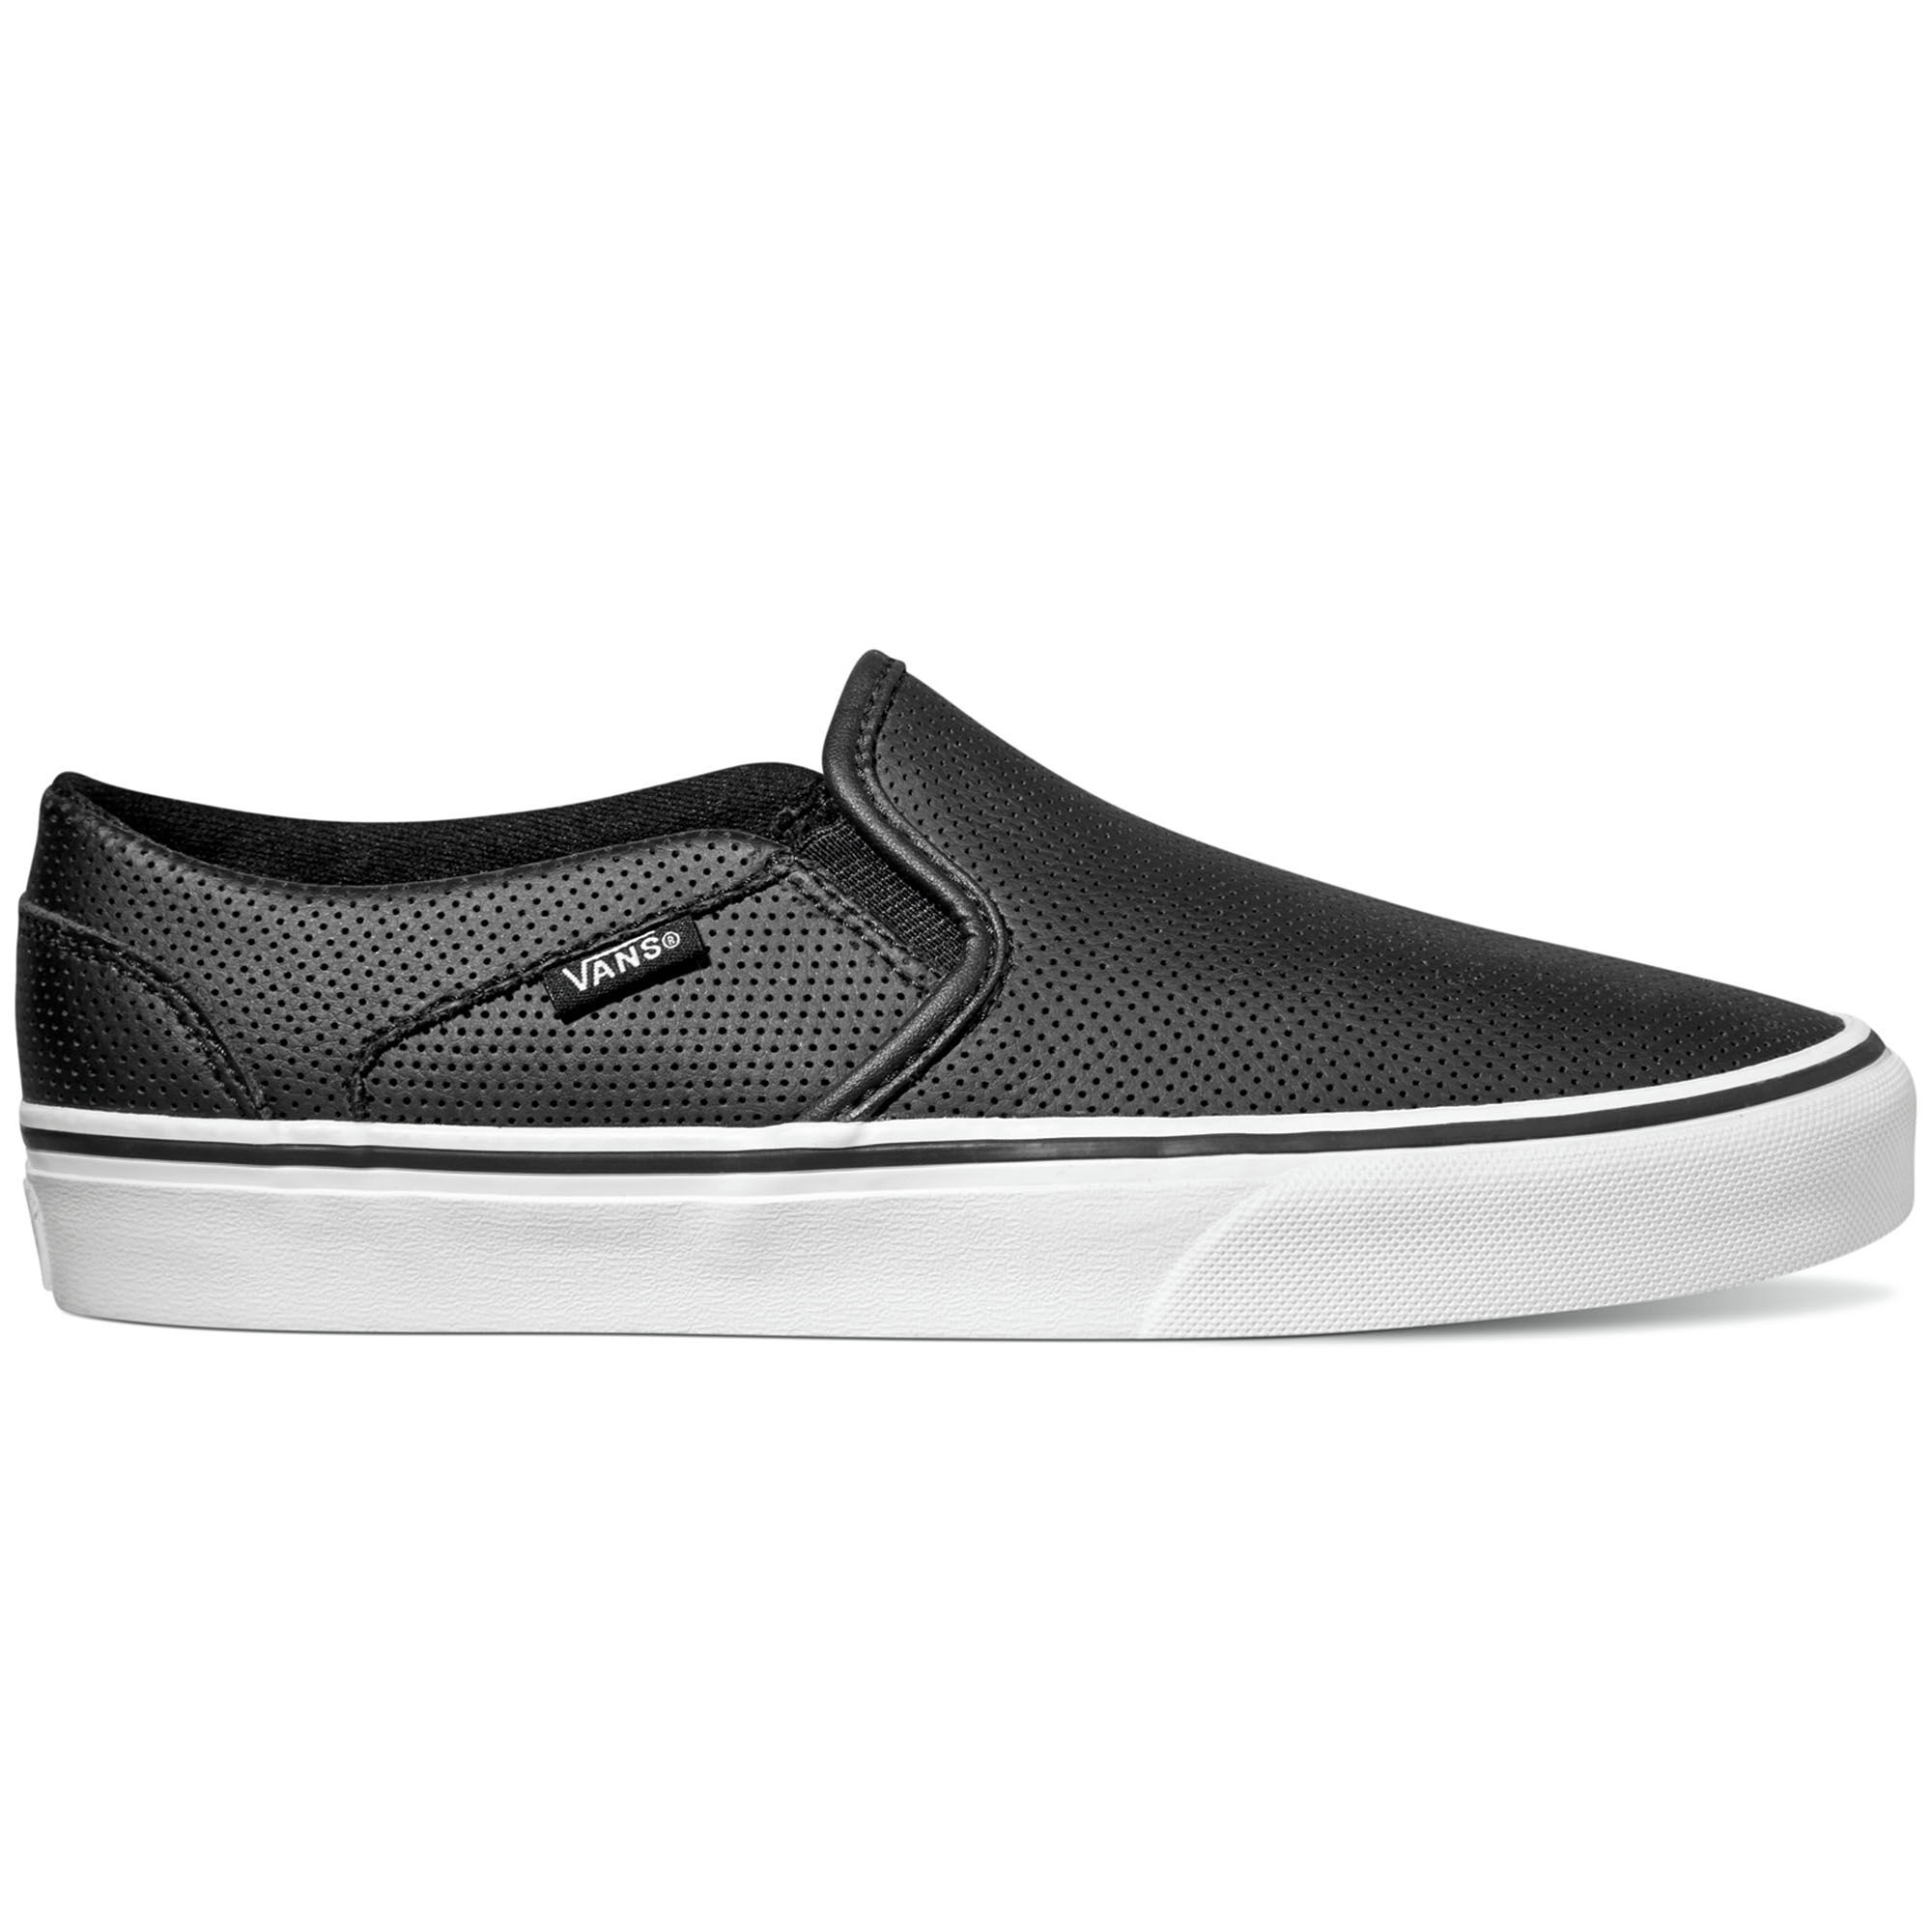 VANS SLIP ON PERF LEATHER SHOES YouTube